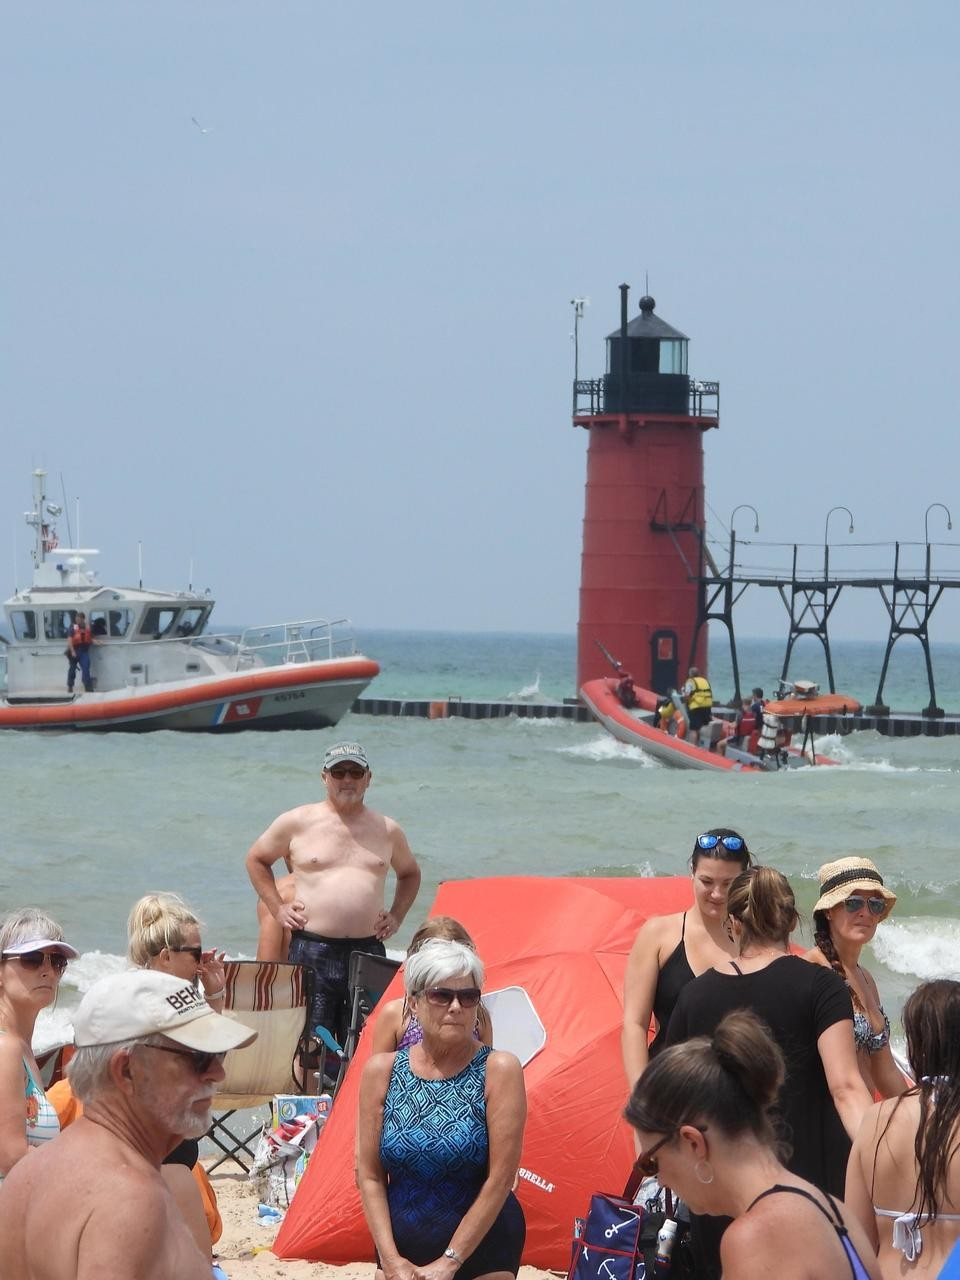 13 Year Old Drowns Near South Haven